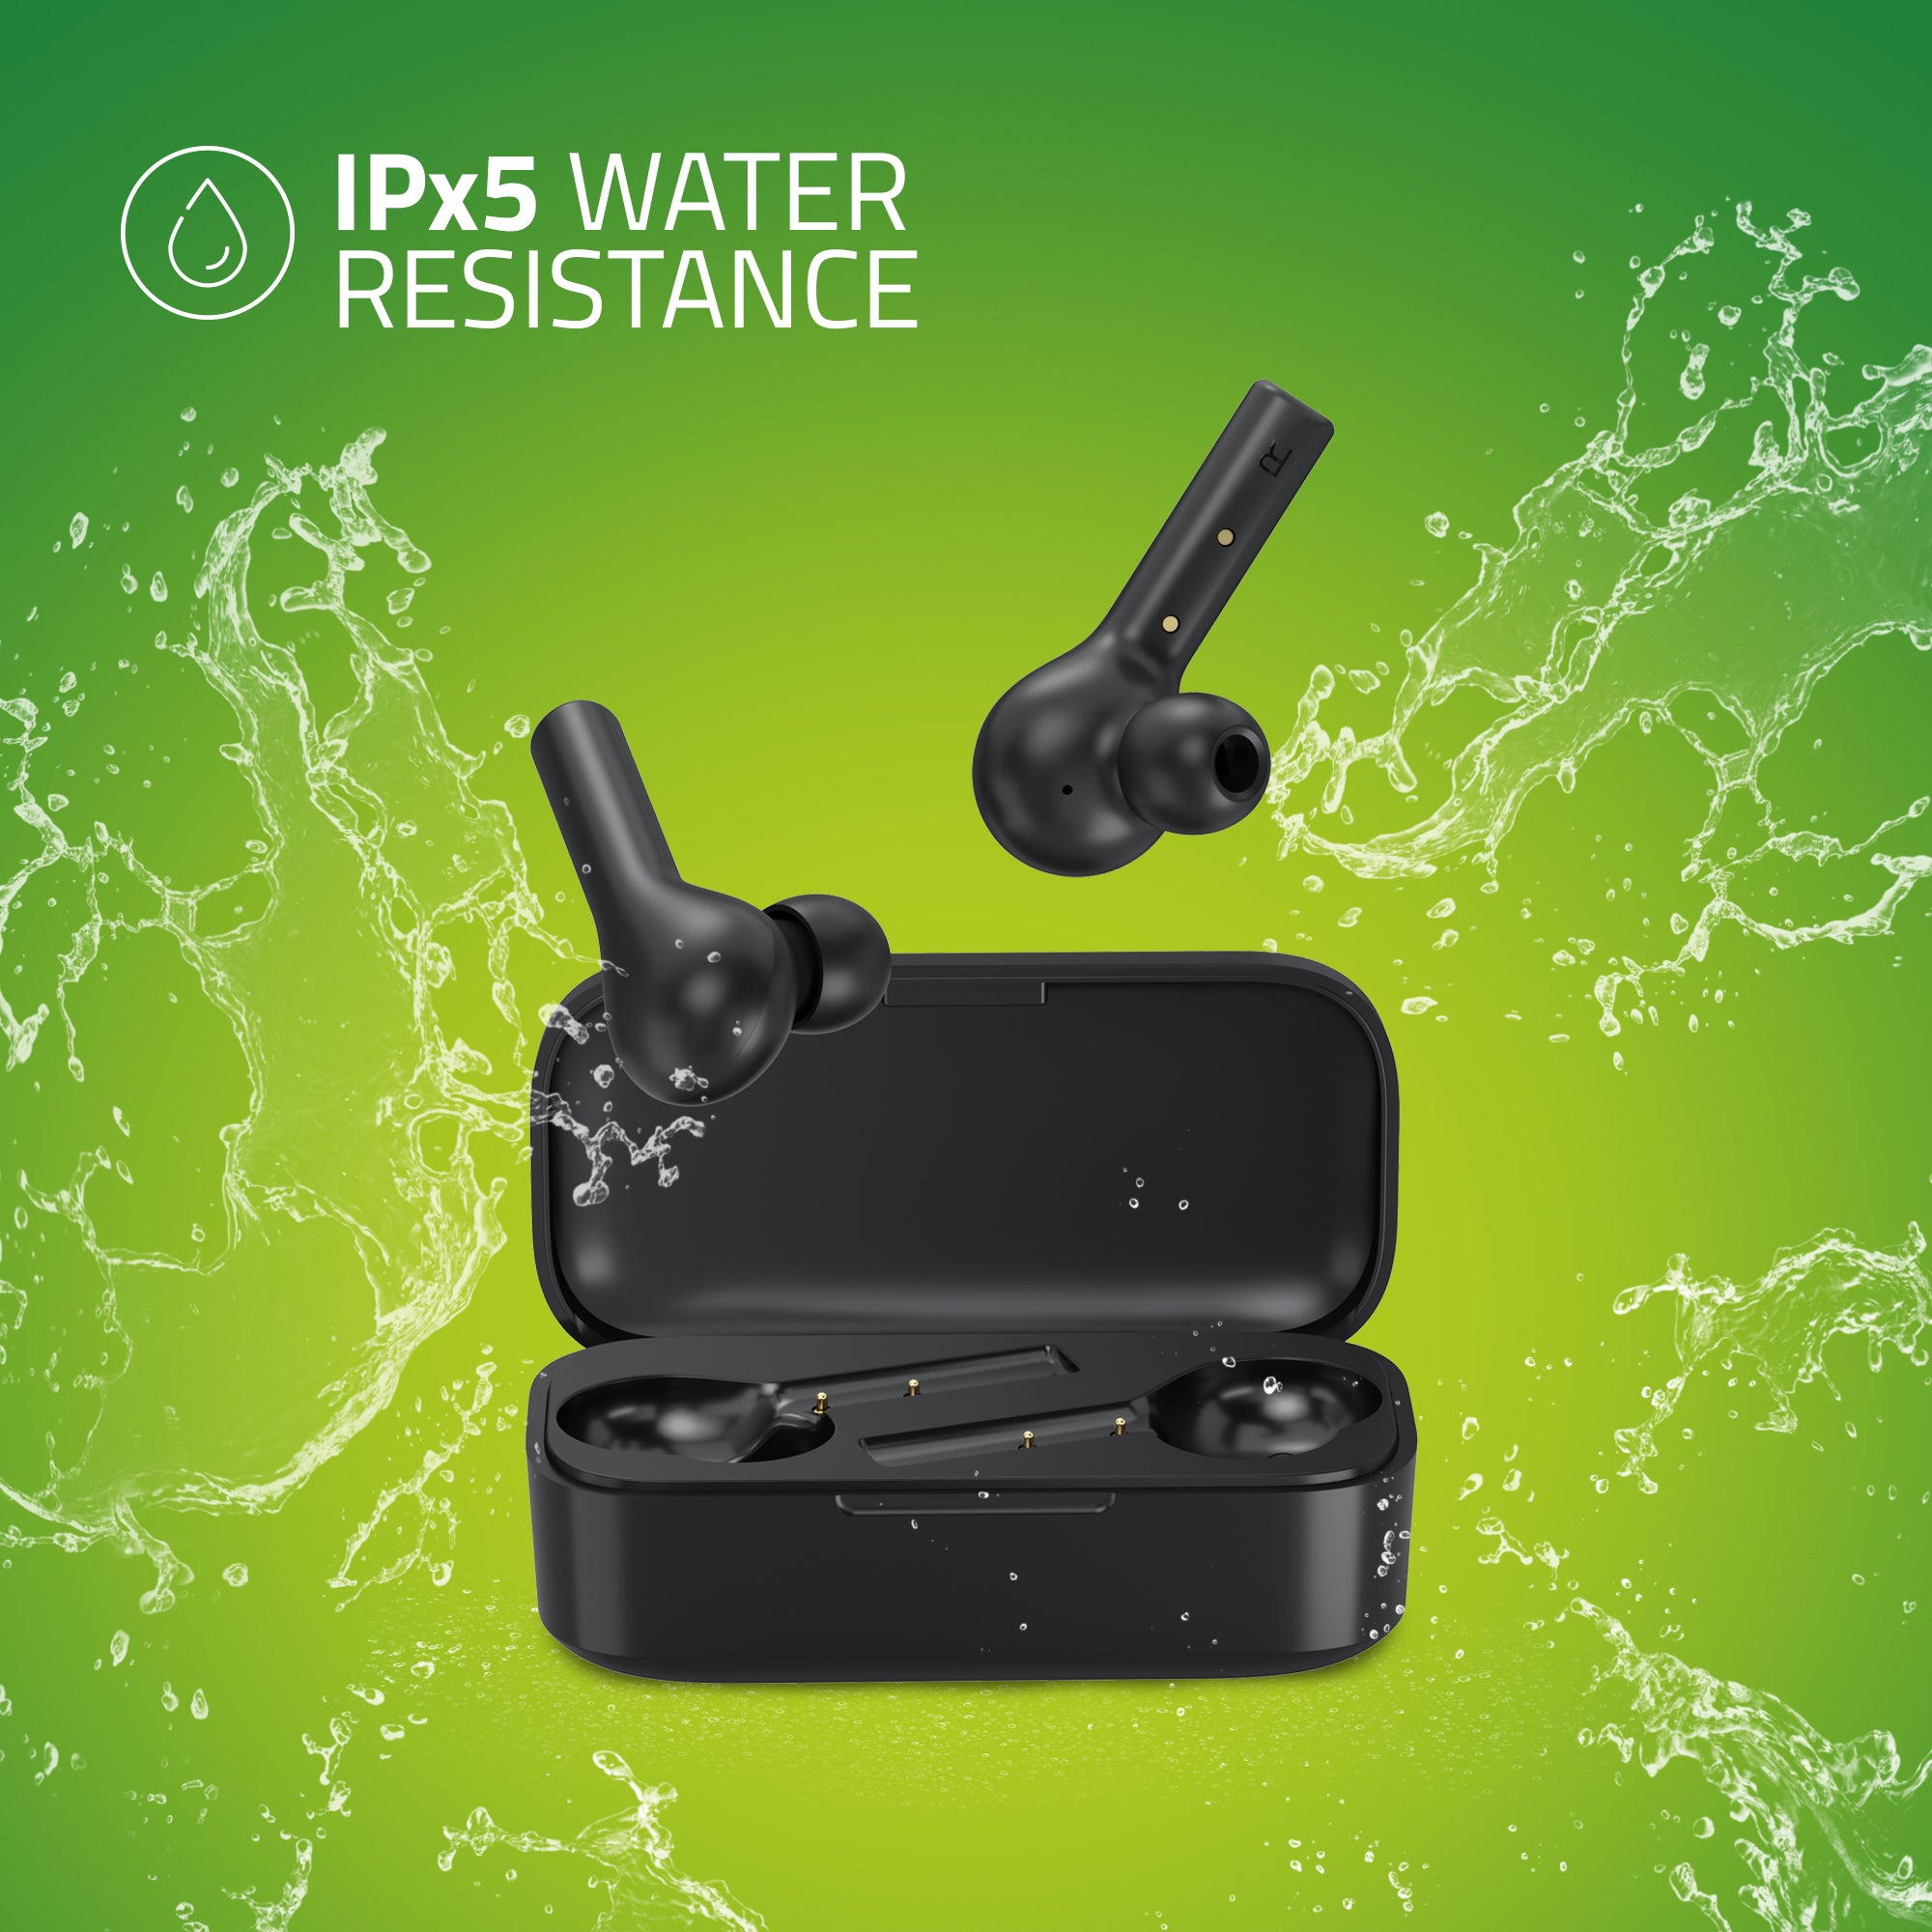 BE110M Artis TWS Earbuds - Water Resistance